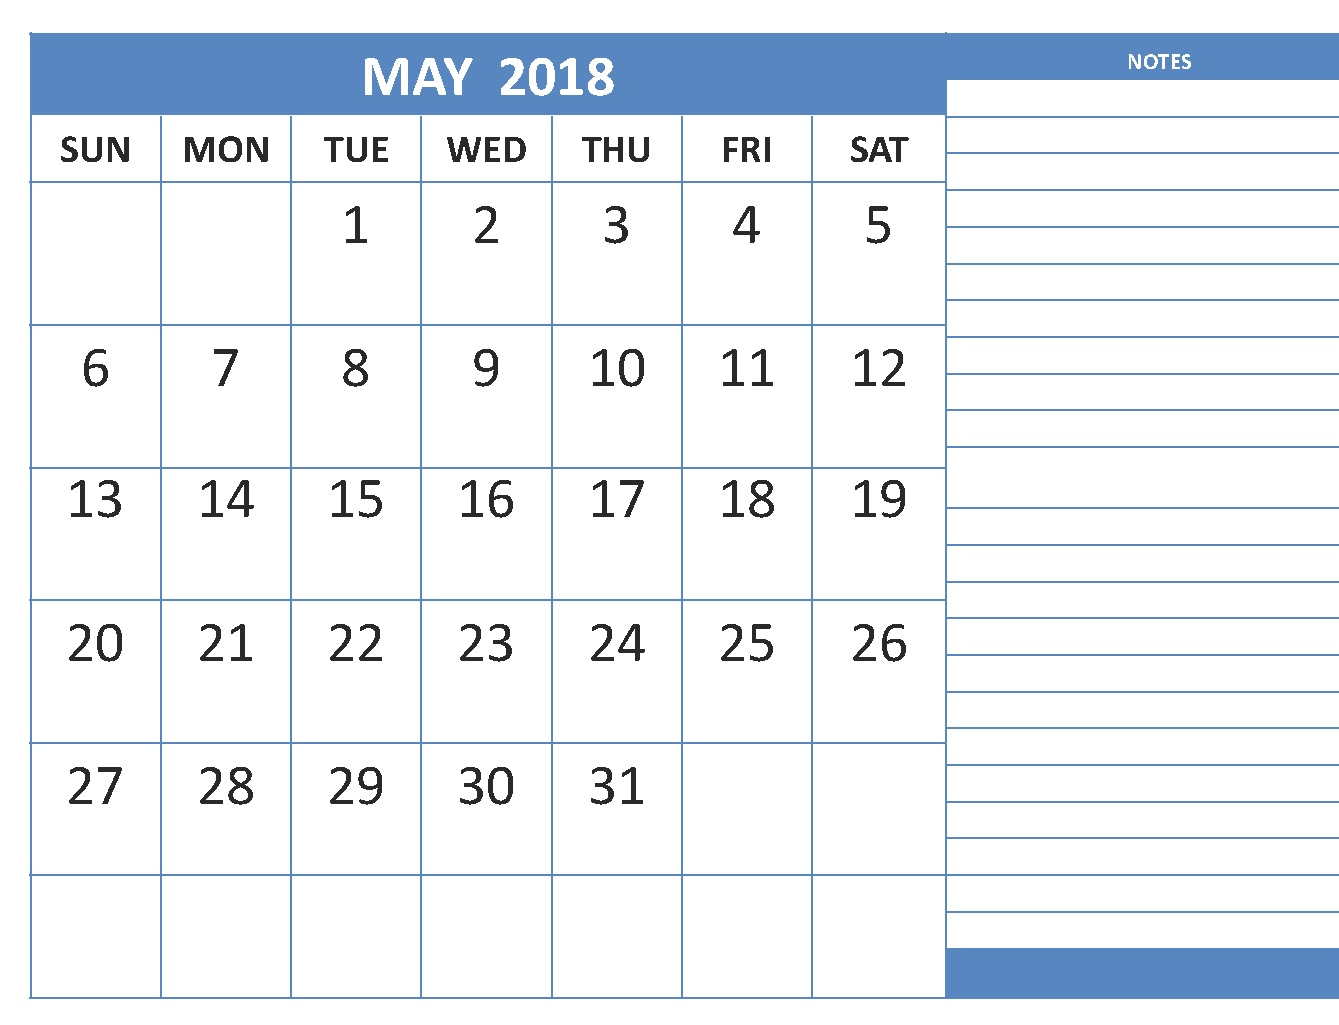 May 2018 Calendar with Notes